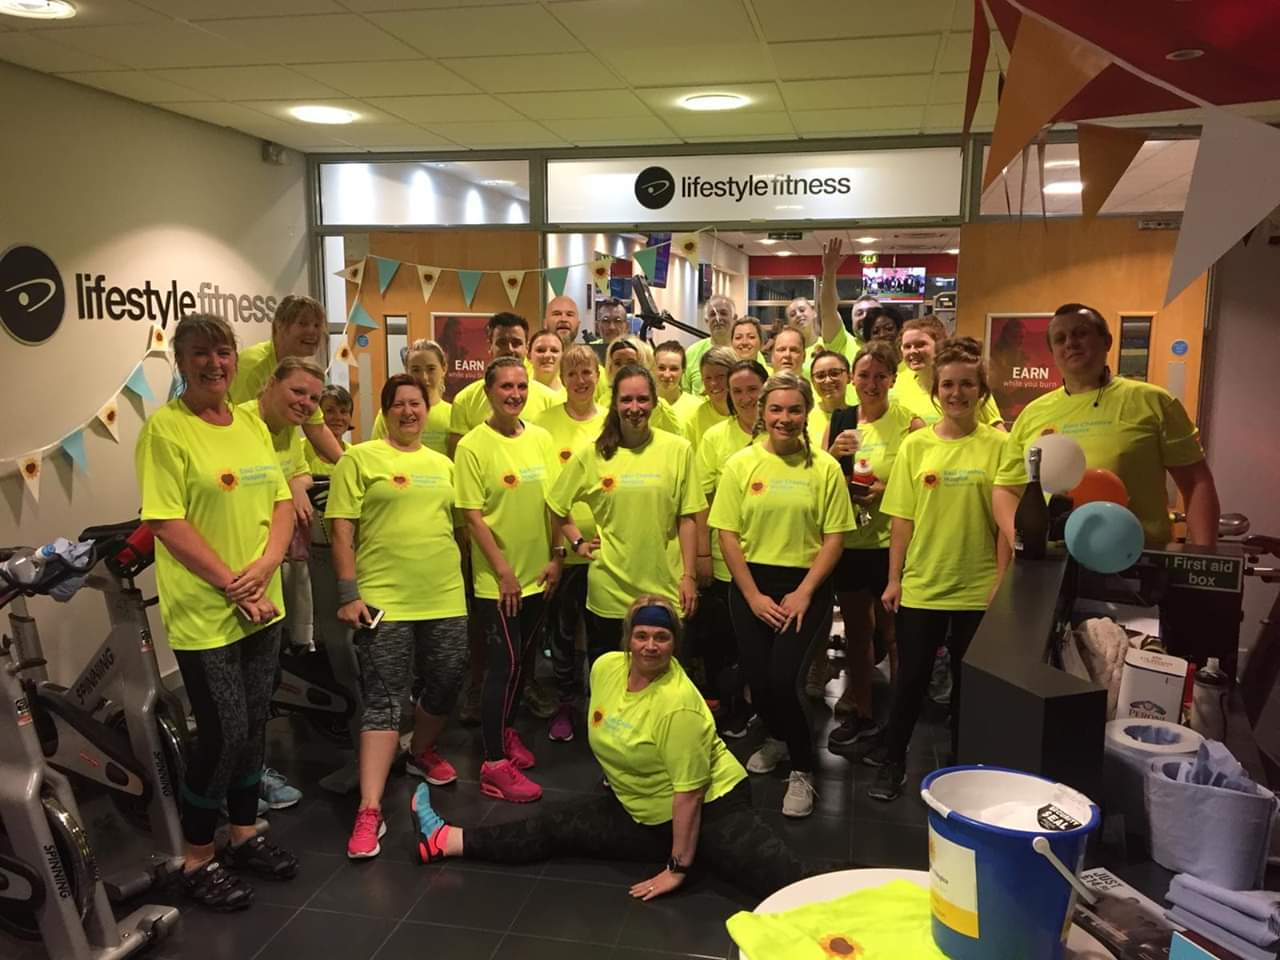 Lifestyle Fitness Charity Spinathon